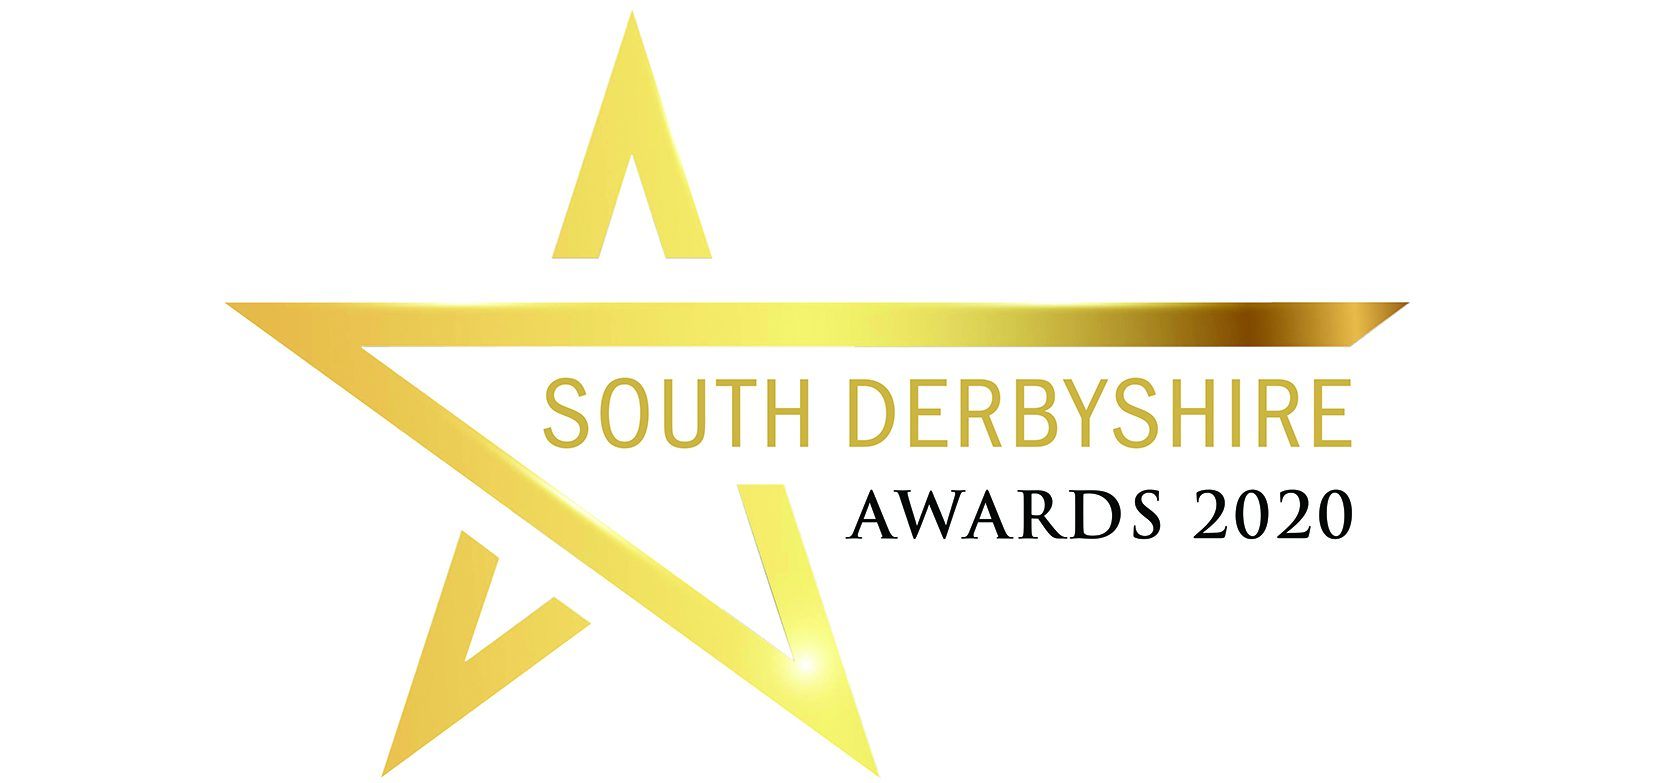 South Derbyshire Awards